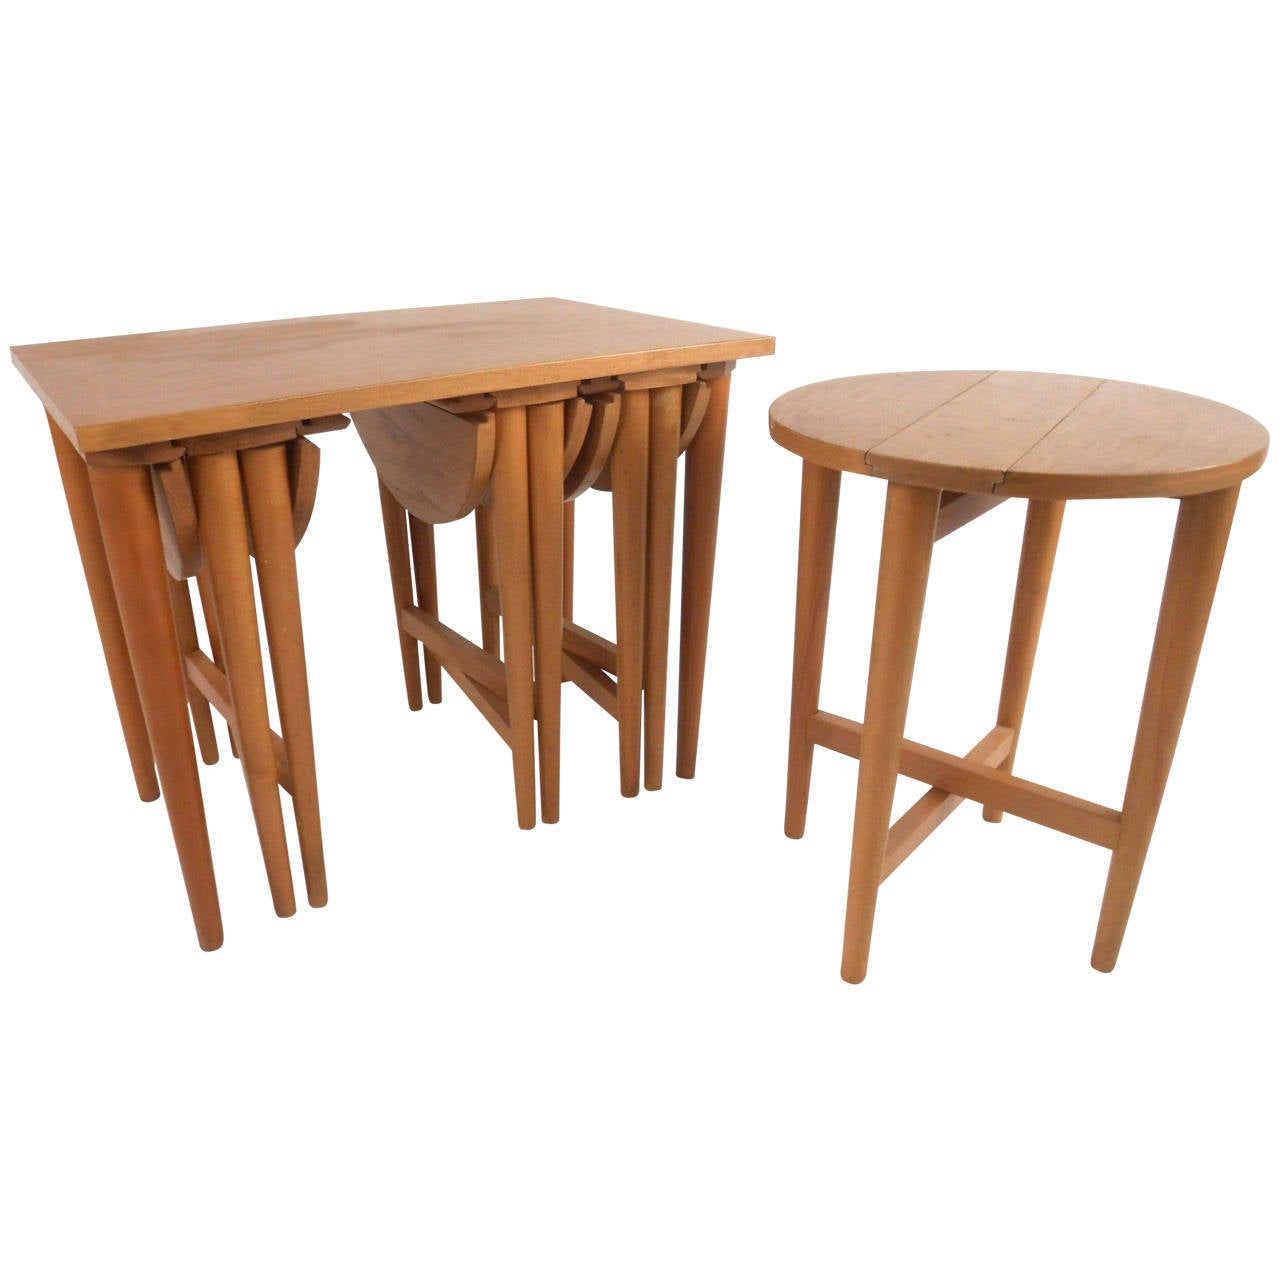 Mid century modern carlo jensen style nesting table set for Table in table